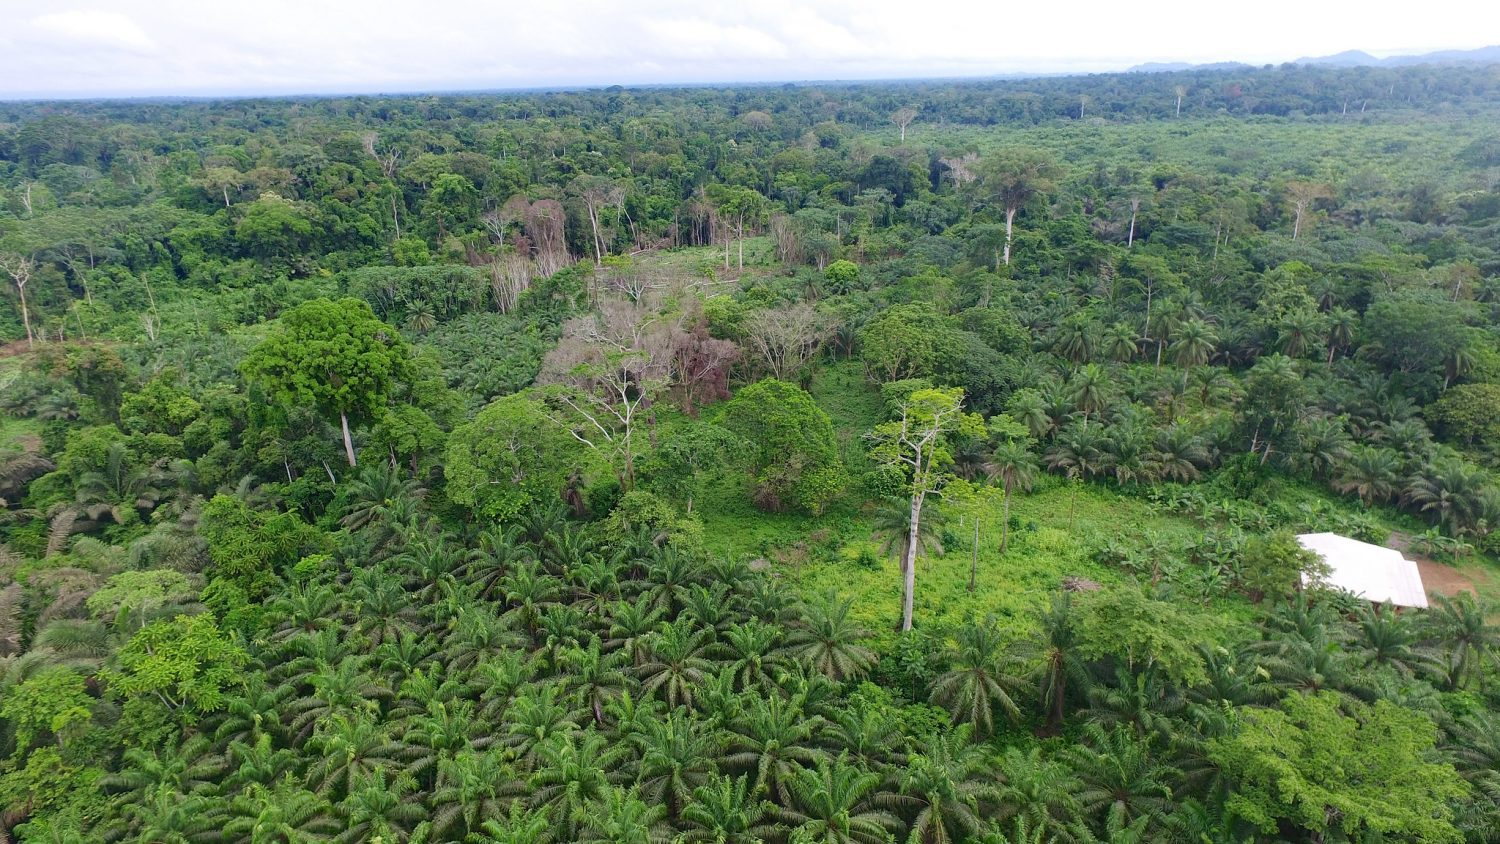 Oil palm industry in Cameroon